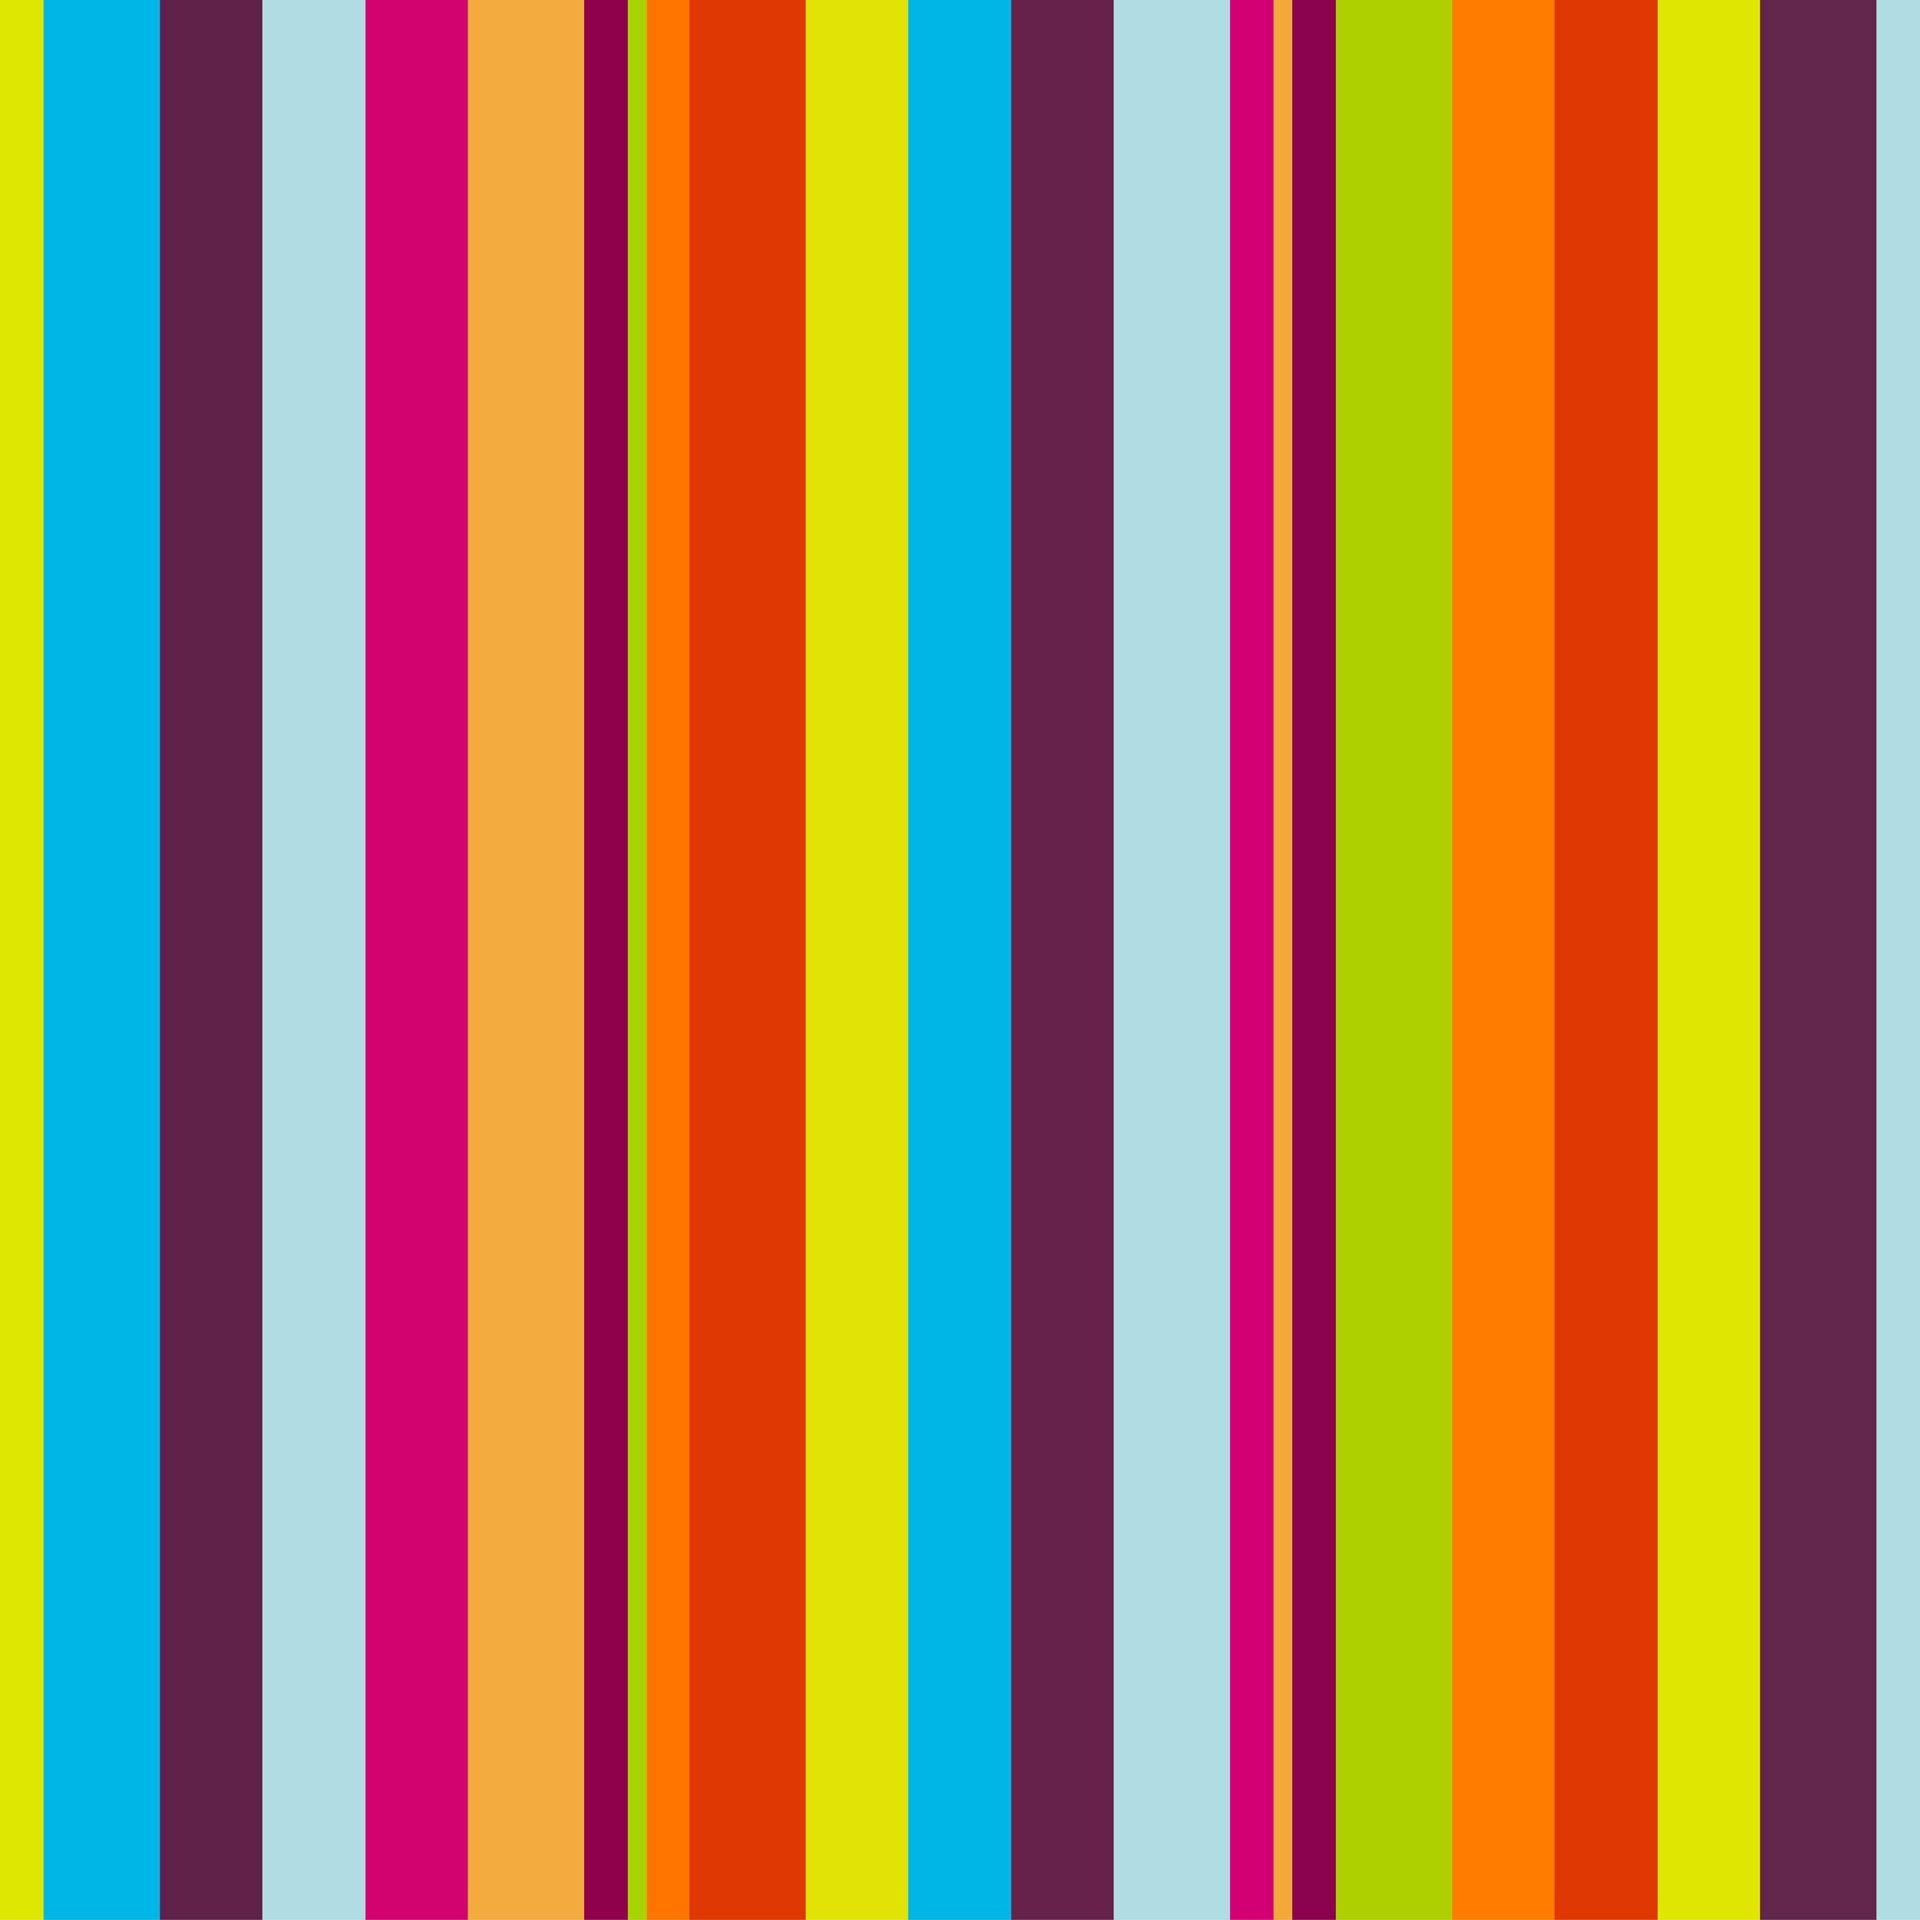 Stripes Background Colorful Stock Photo HD   Public Domain 1920x1920